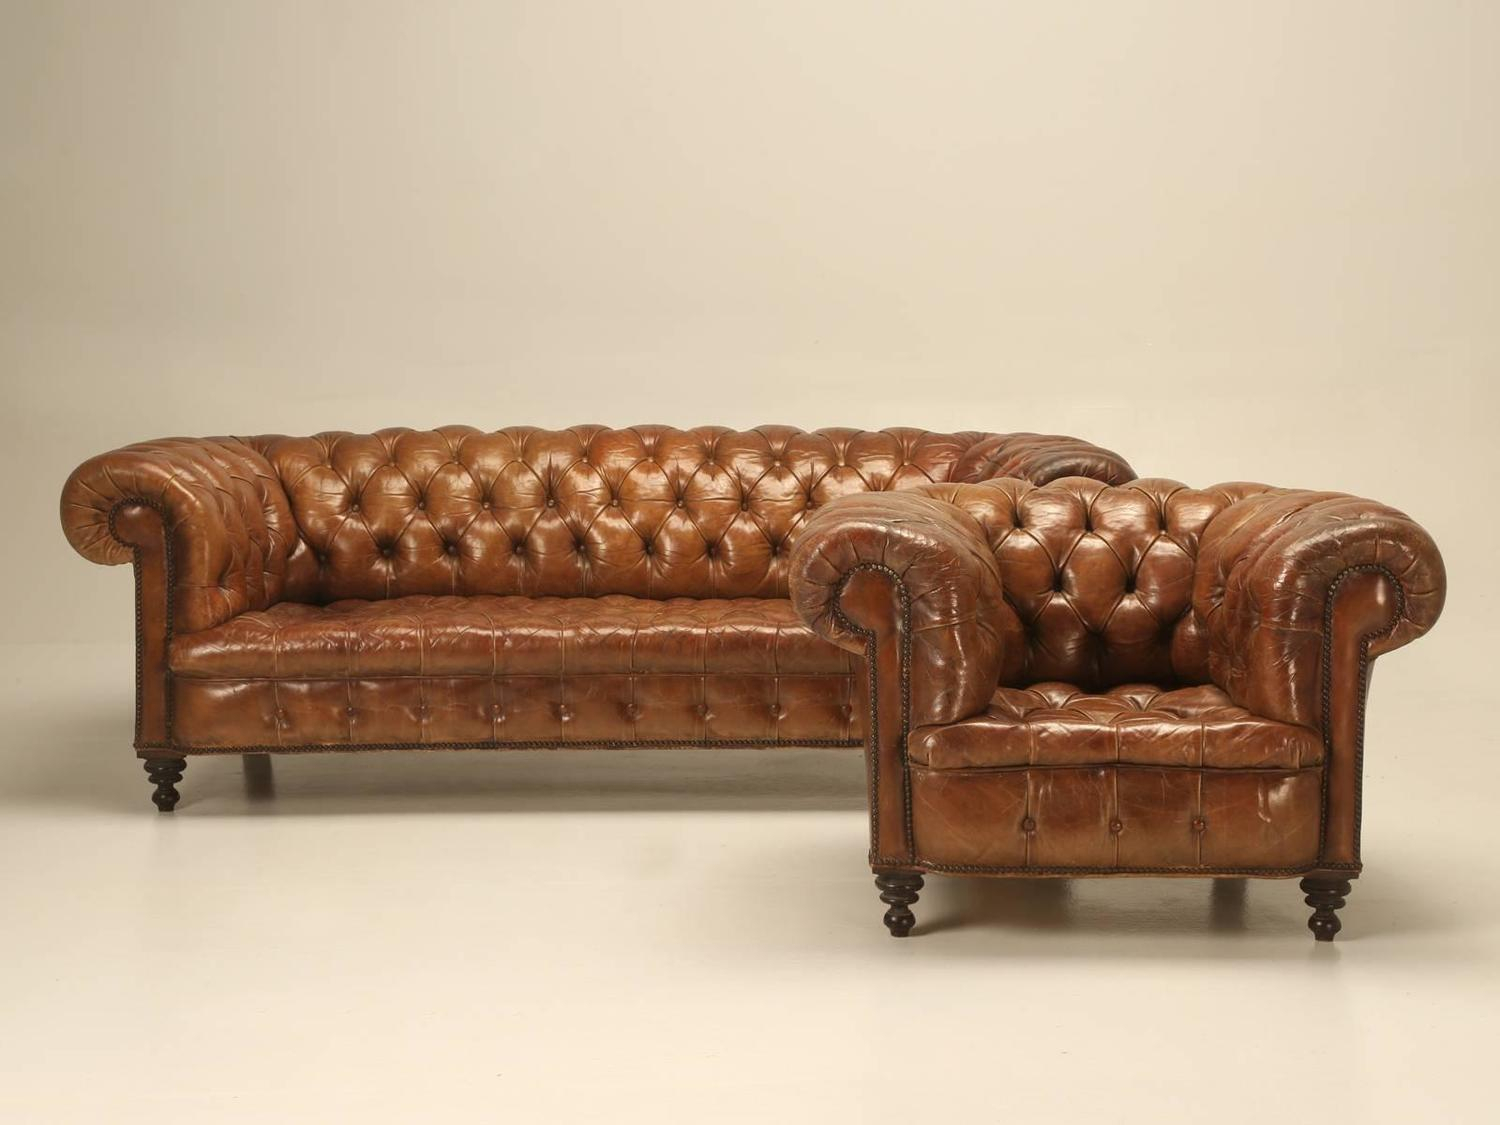 Antique Leather Chesterfield Sofa In Original Leather For Intended For Leather Chesterfield Sofas (View 5 of 15)